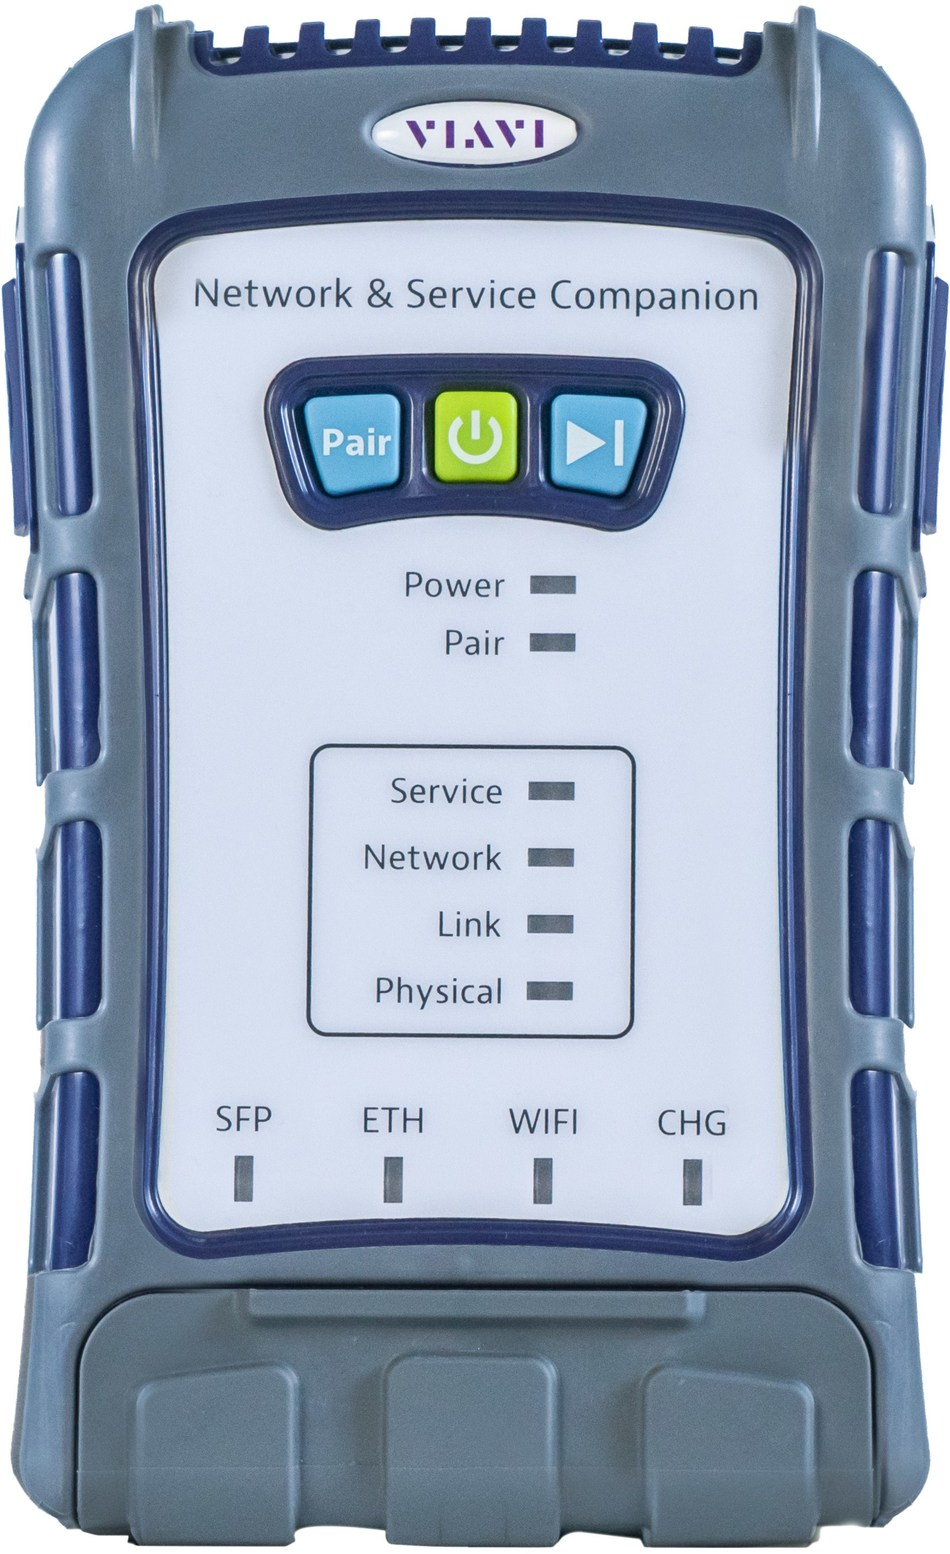 VIAVI introduces NSC-100 to speed network and service validation for technicians and contractors. Instrument is first of its kind to combine PON, Ethernet and Wi-Fi testing with OneCheck.